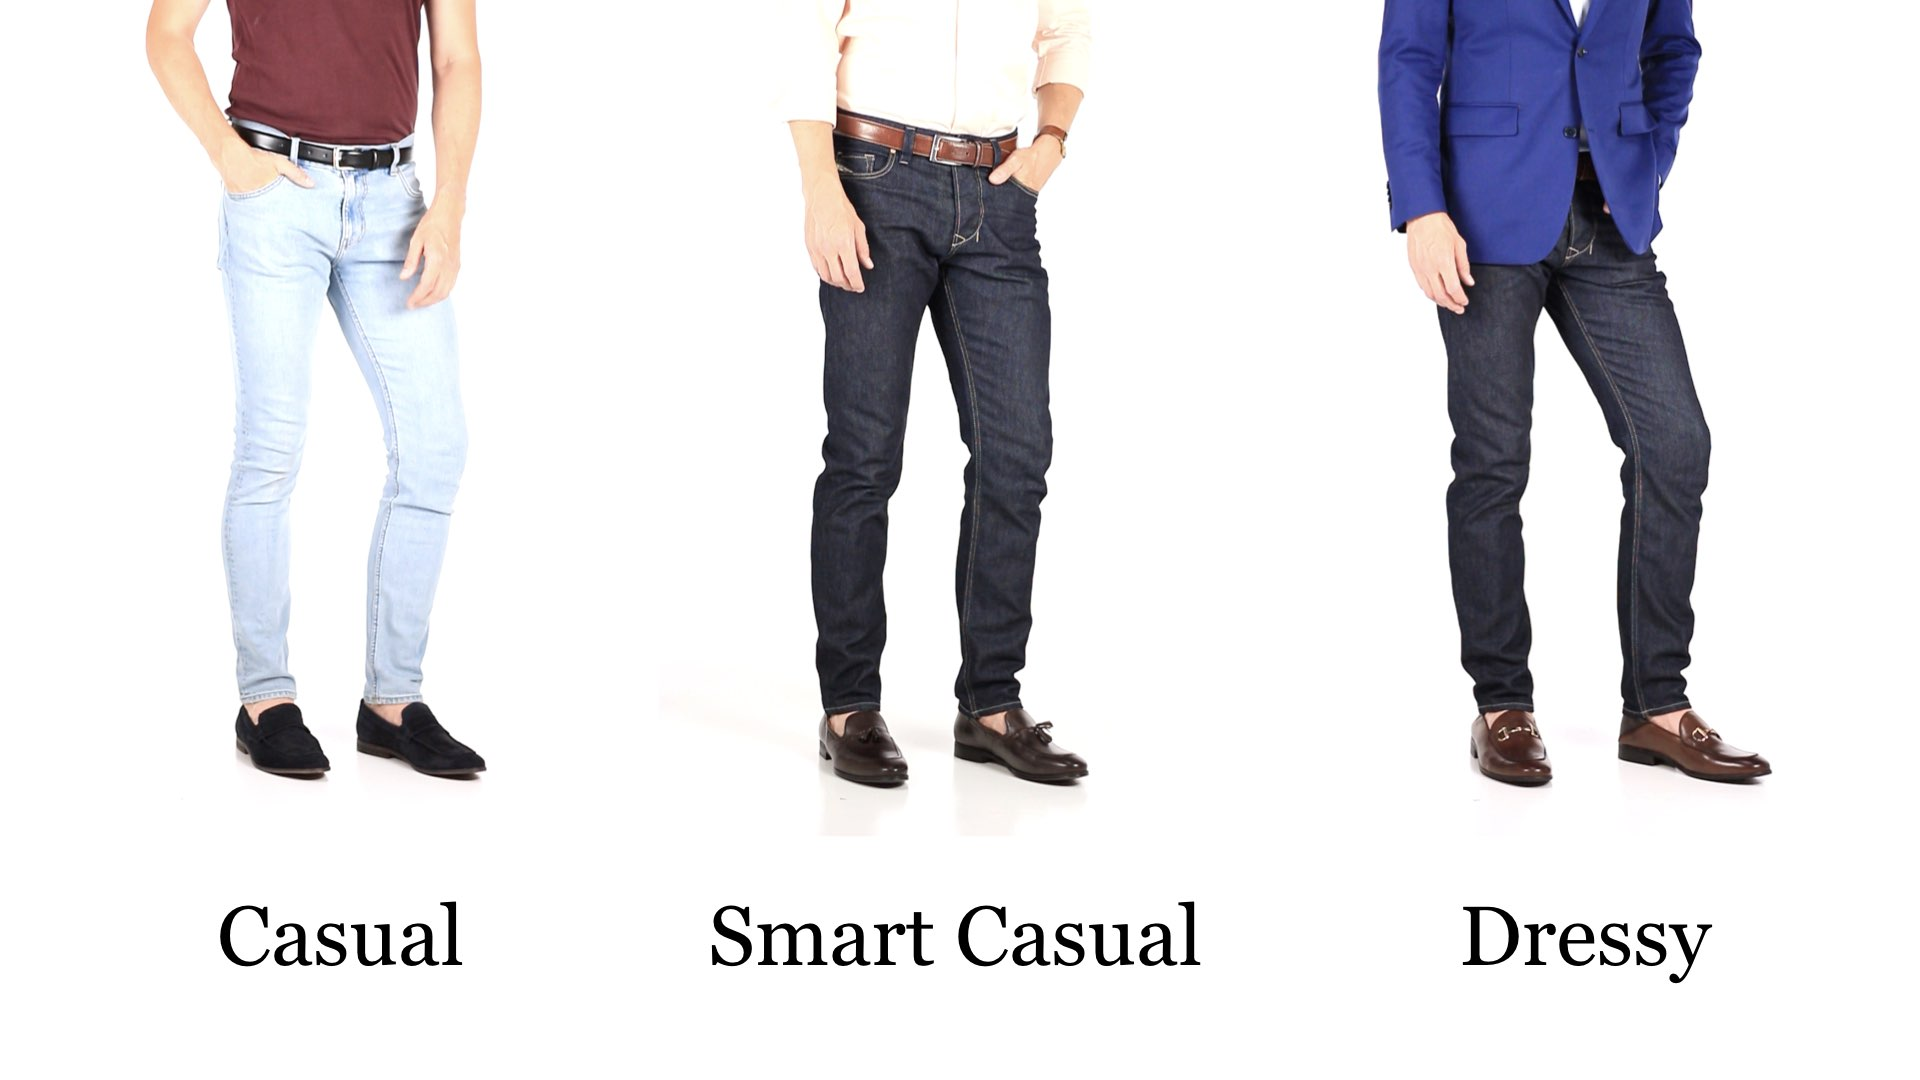 How To Wear Jeans And Dress Shoes